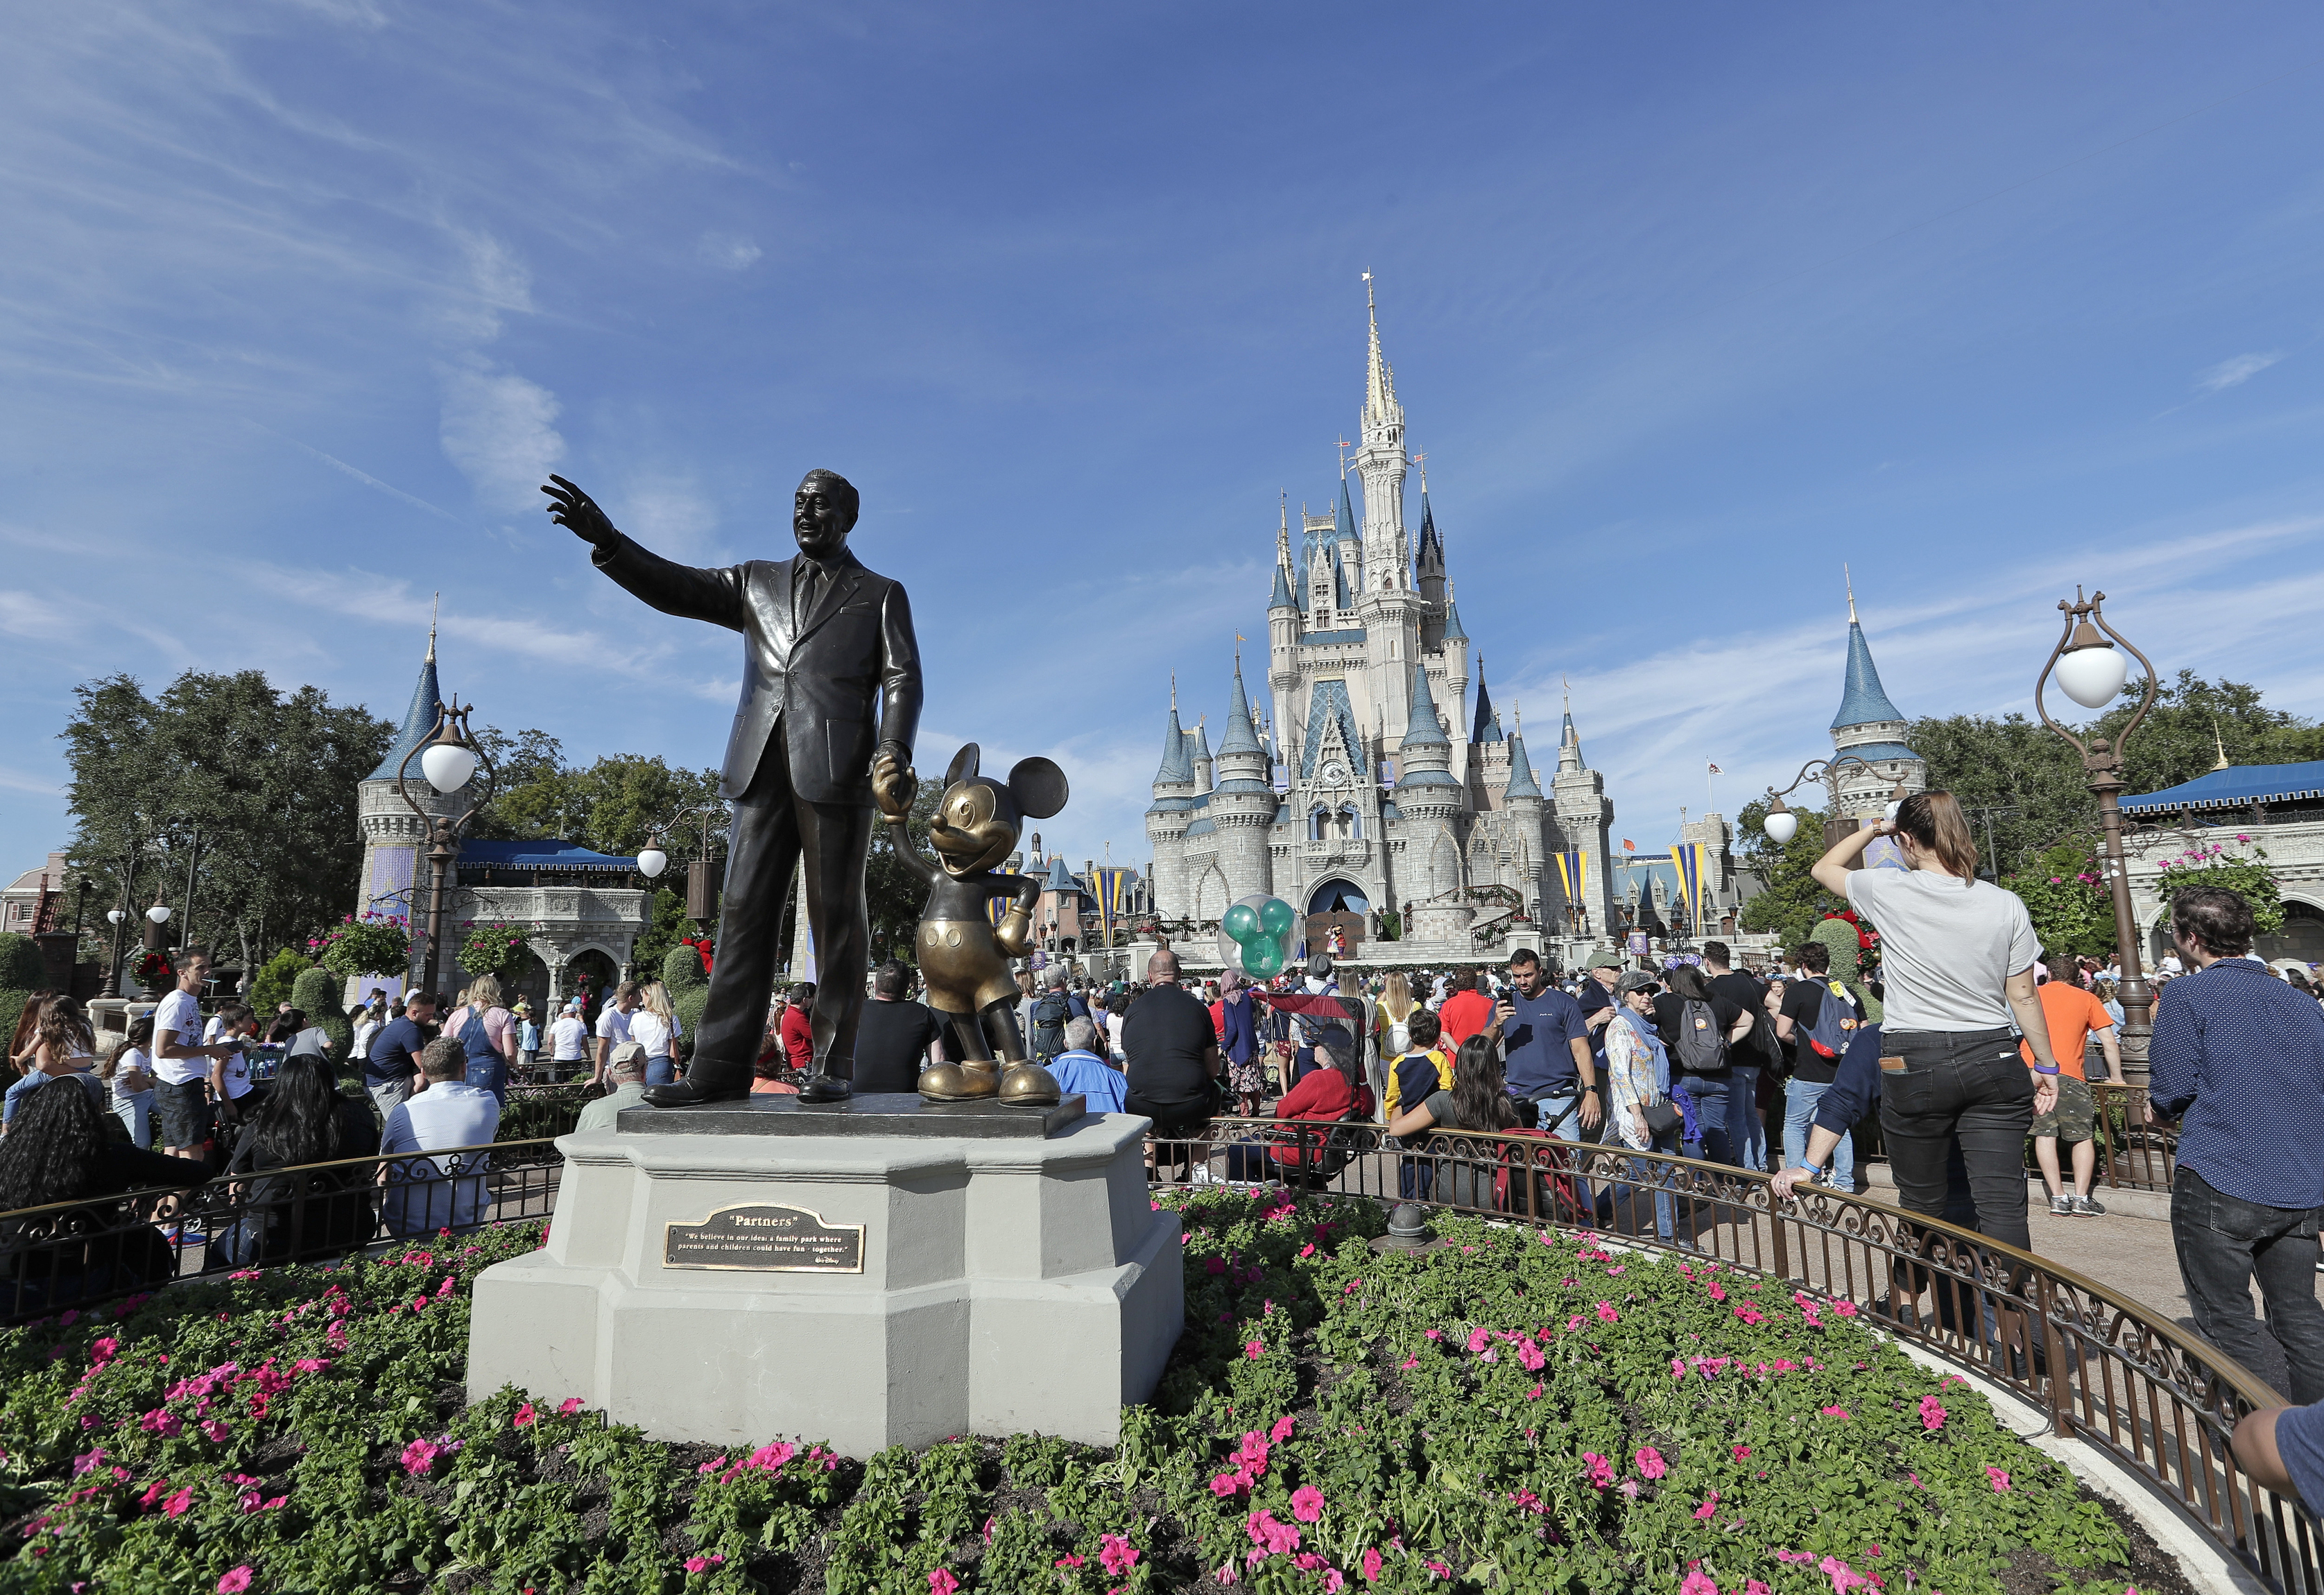 In this Jan. 9, 2019, file photo, theme park guests walk near a statue of Walt Disney and Mickey Mouse in front of the Cinderella castle in the Magic Kingdom at Walt Disney World in Lake Buena Vista, Fla.(AP Photo/John Raoux, File)